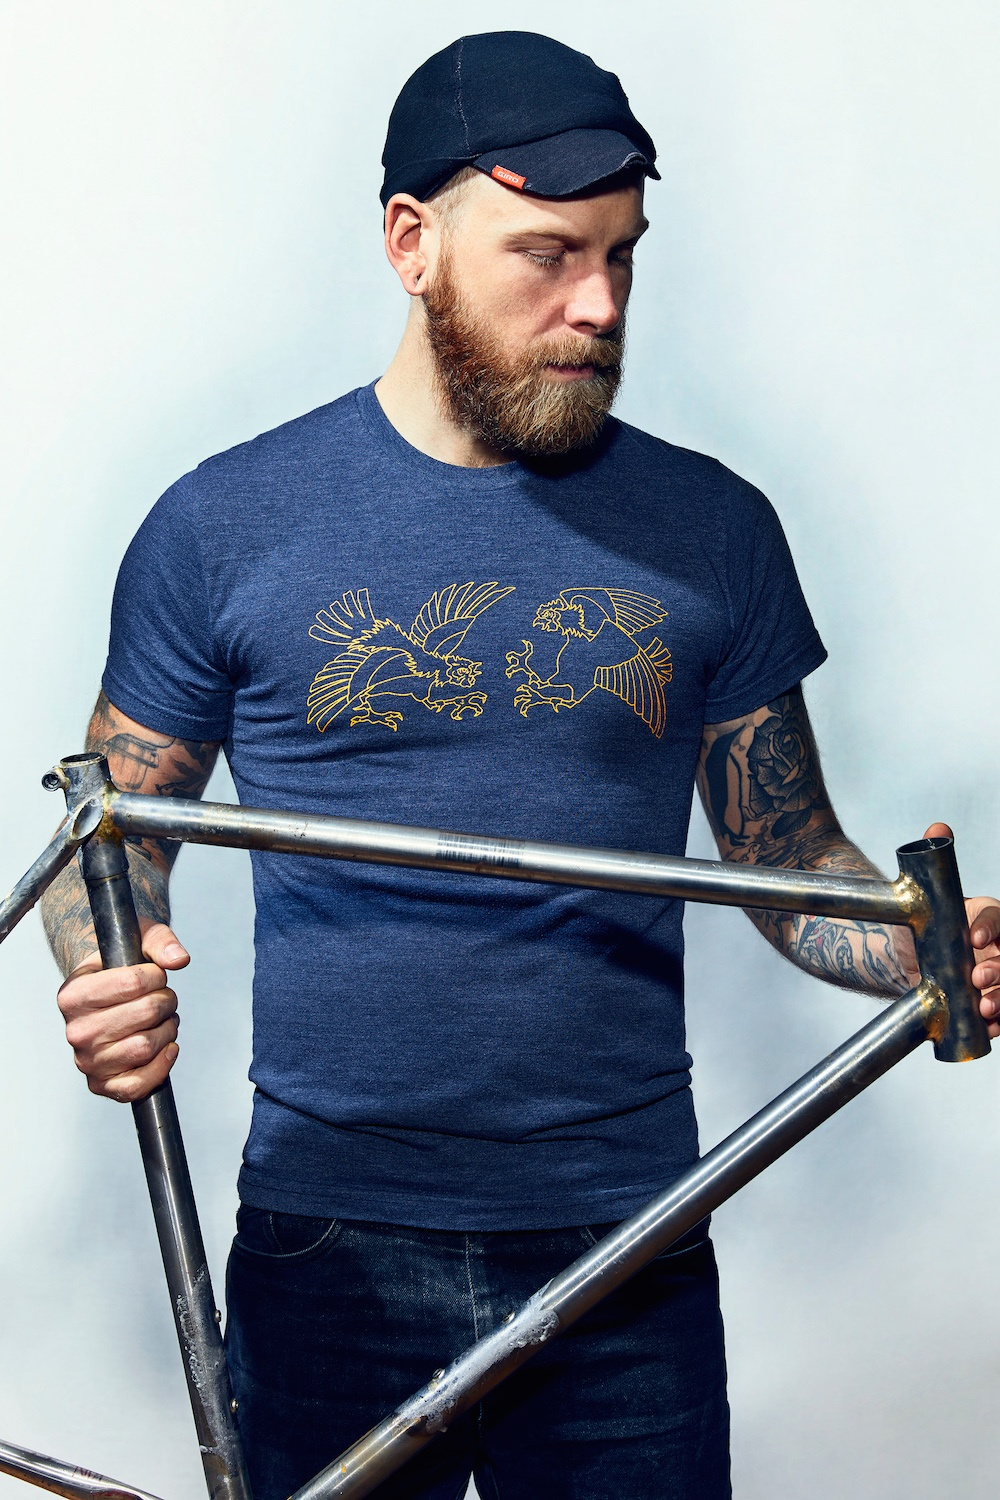 Mechanic-holding-bike-frame.jpg